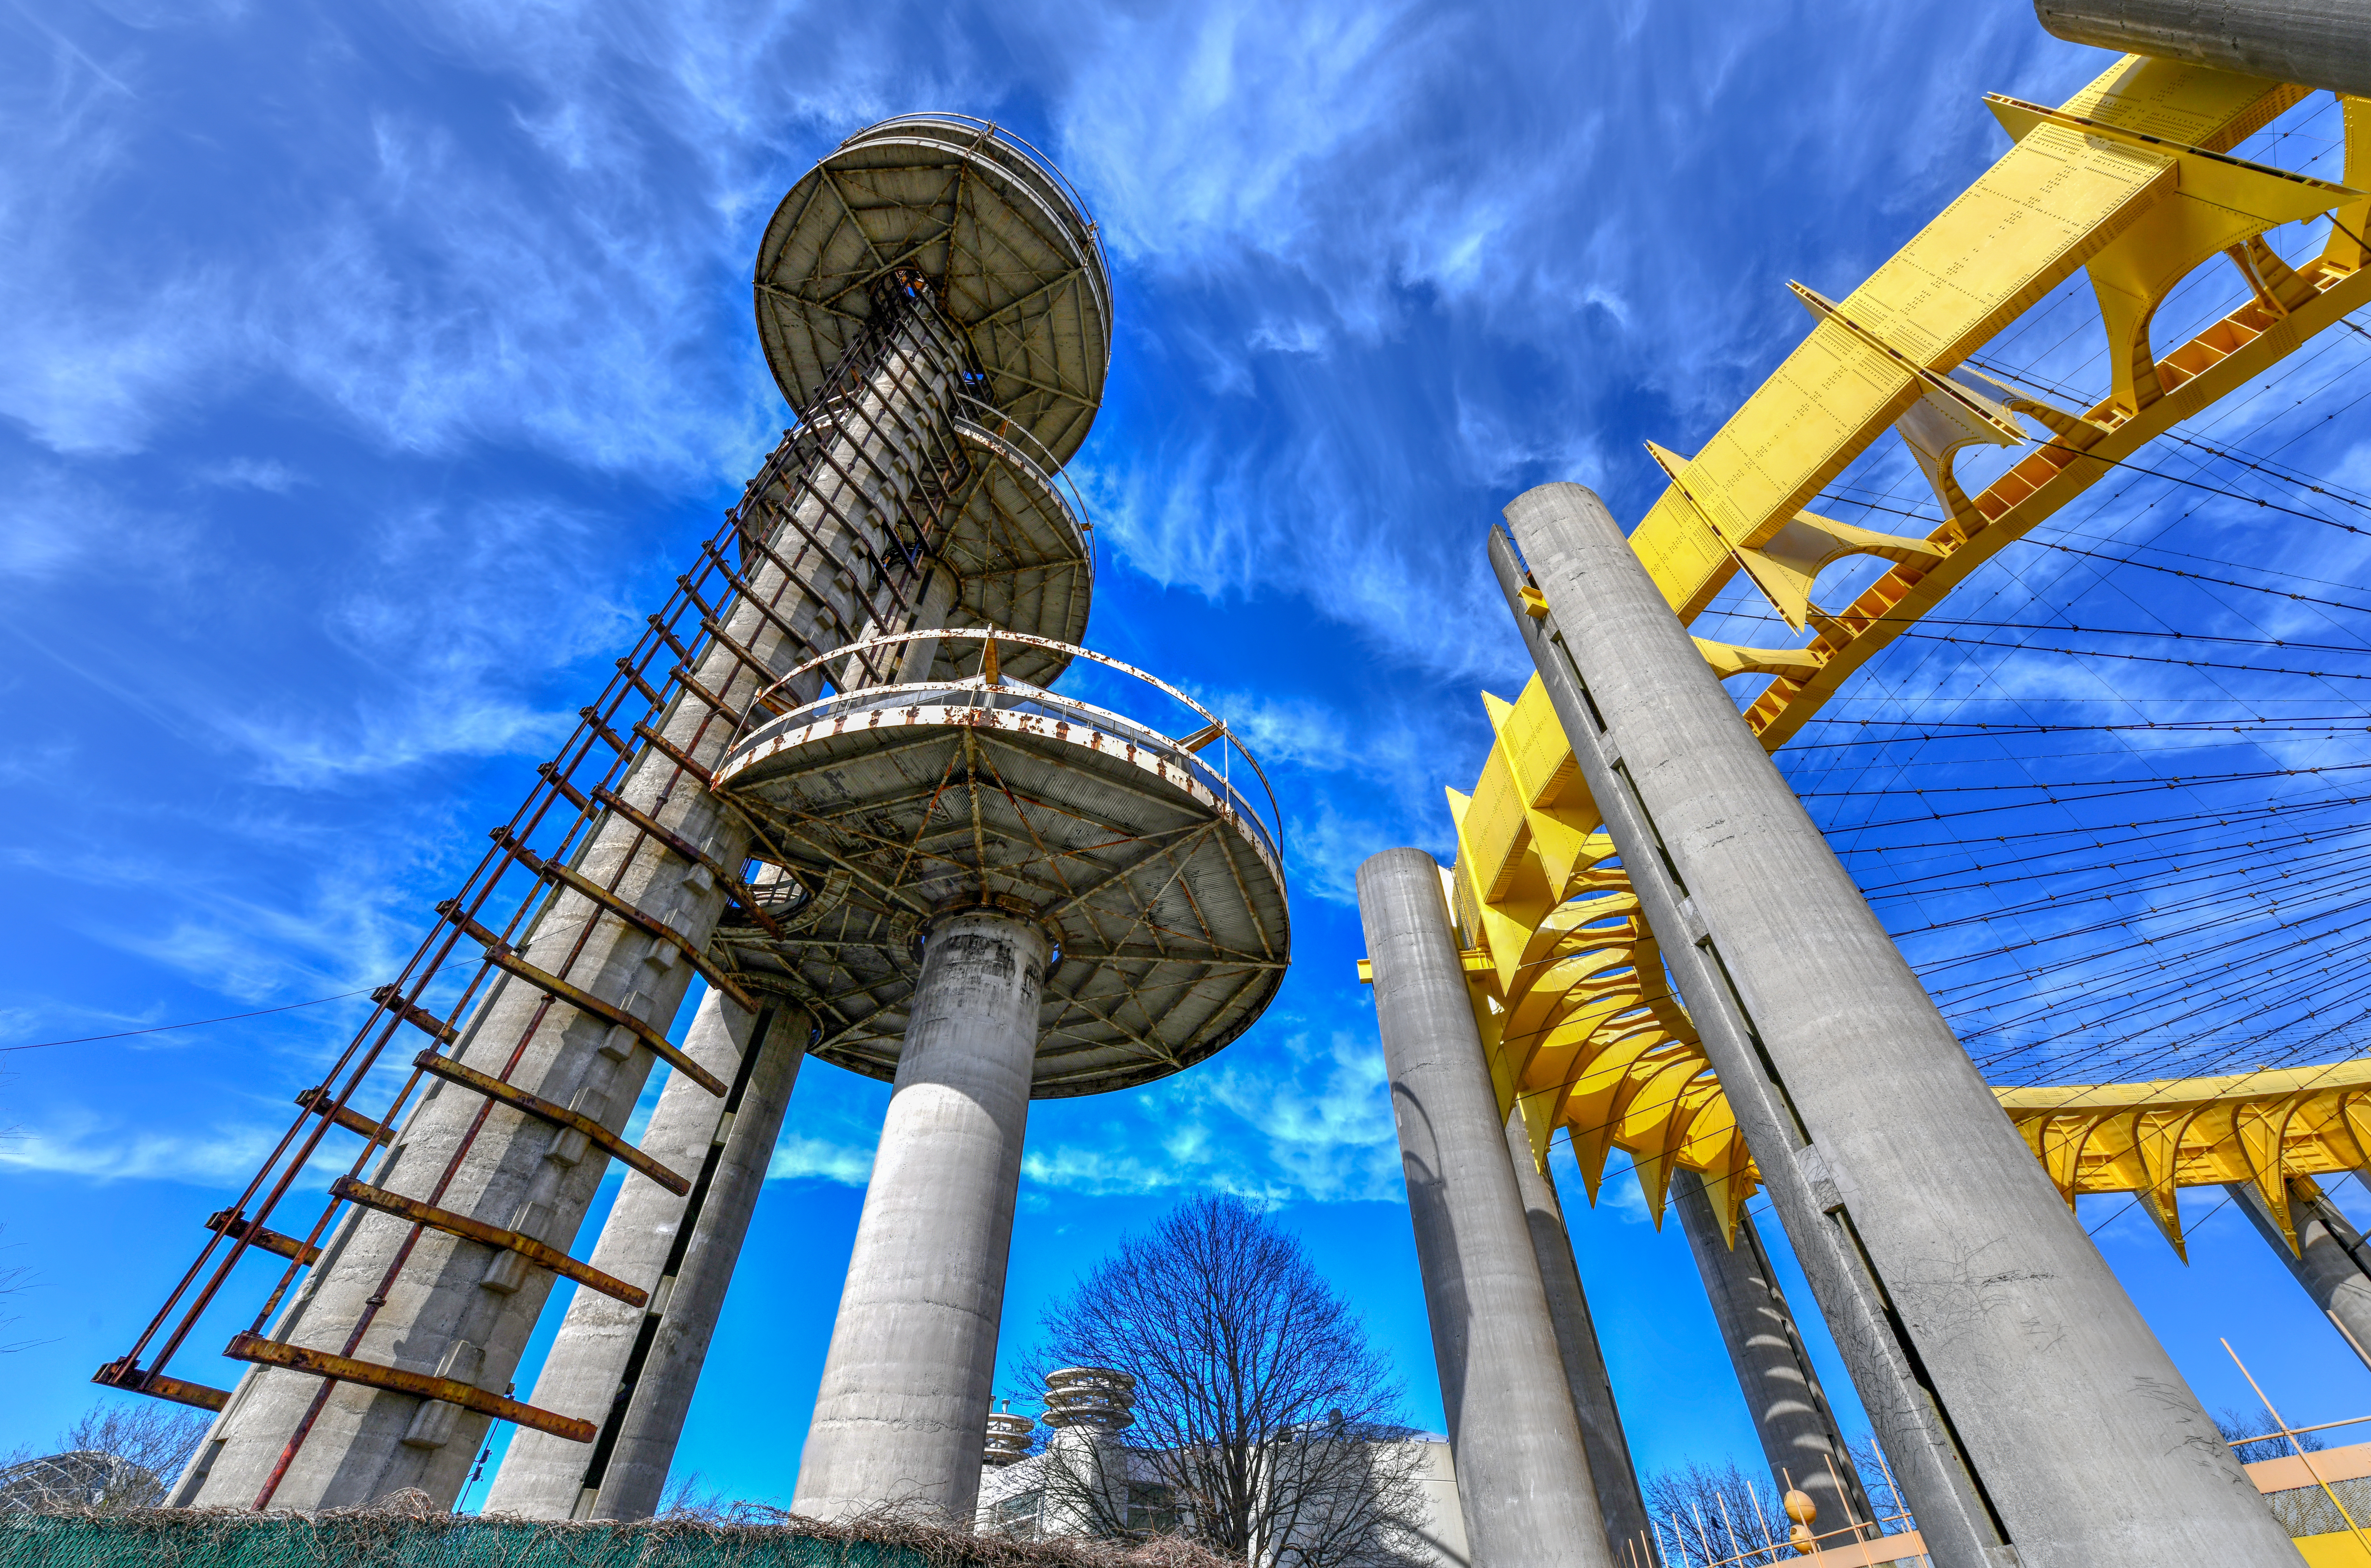 Three tall towers and a smaller round one painted in yellow rise above Flushing Meadows-Corona Park.